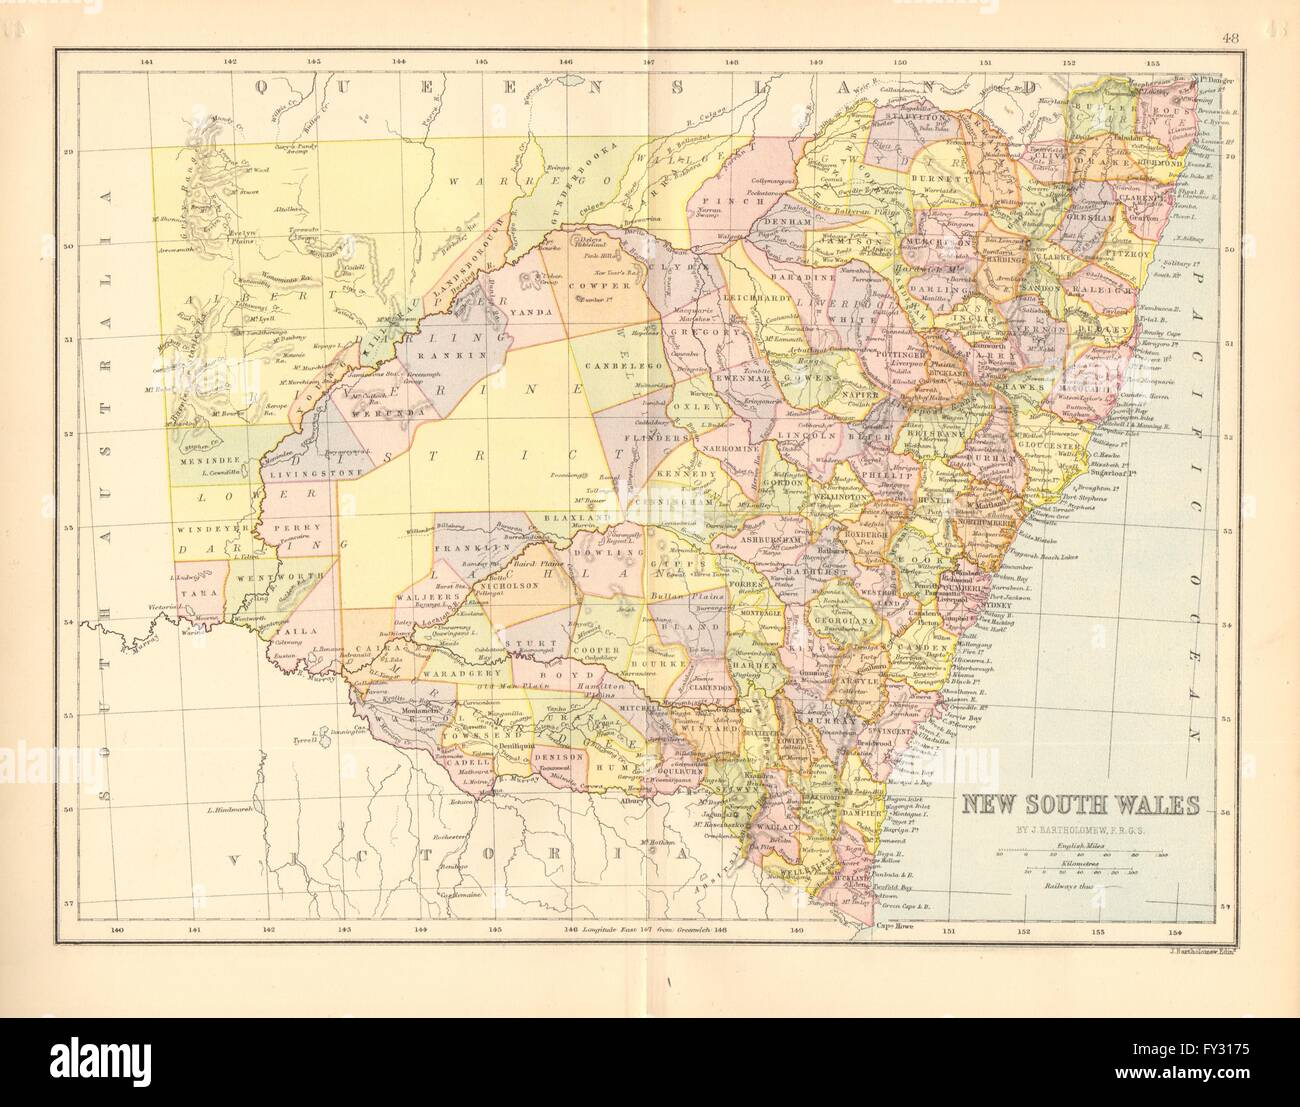 NEW SOUTH WALES. State map. Shows counties/districts/railways Stock on best road trip map, greater seattle area map, intermountain west map, northeastern us map, usa map, eastern us map, state flag map, continental u.s. map, asia pacific region map, natural gas fracking map, mid-atlantic region map, southern u.s. map, local map, tri-state area map, new york senate district map, east of mississippi map, greater boston area map, los angeles area map, michigan state map, idaho state map,